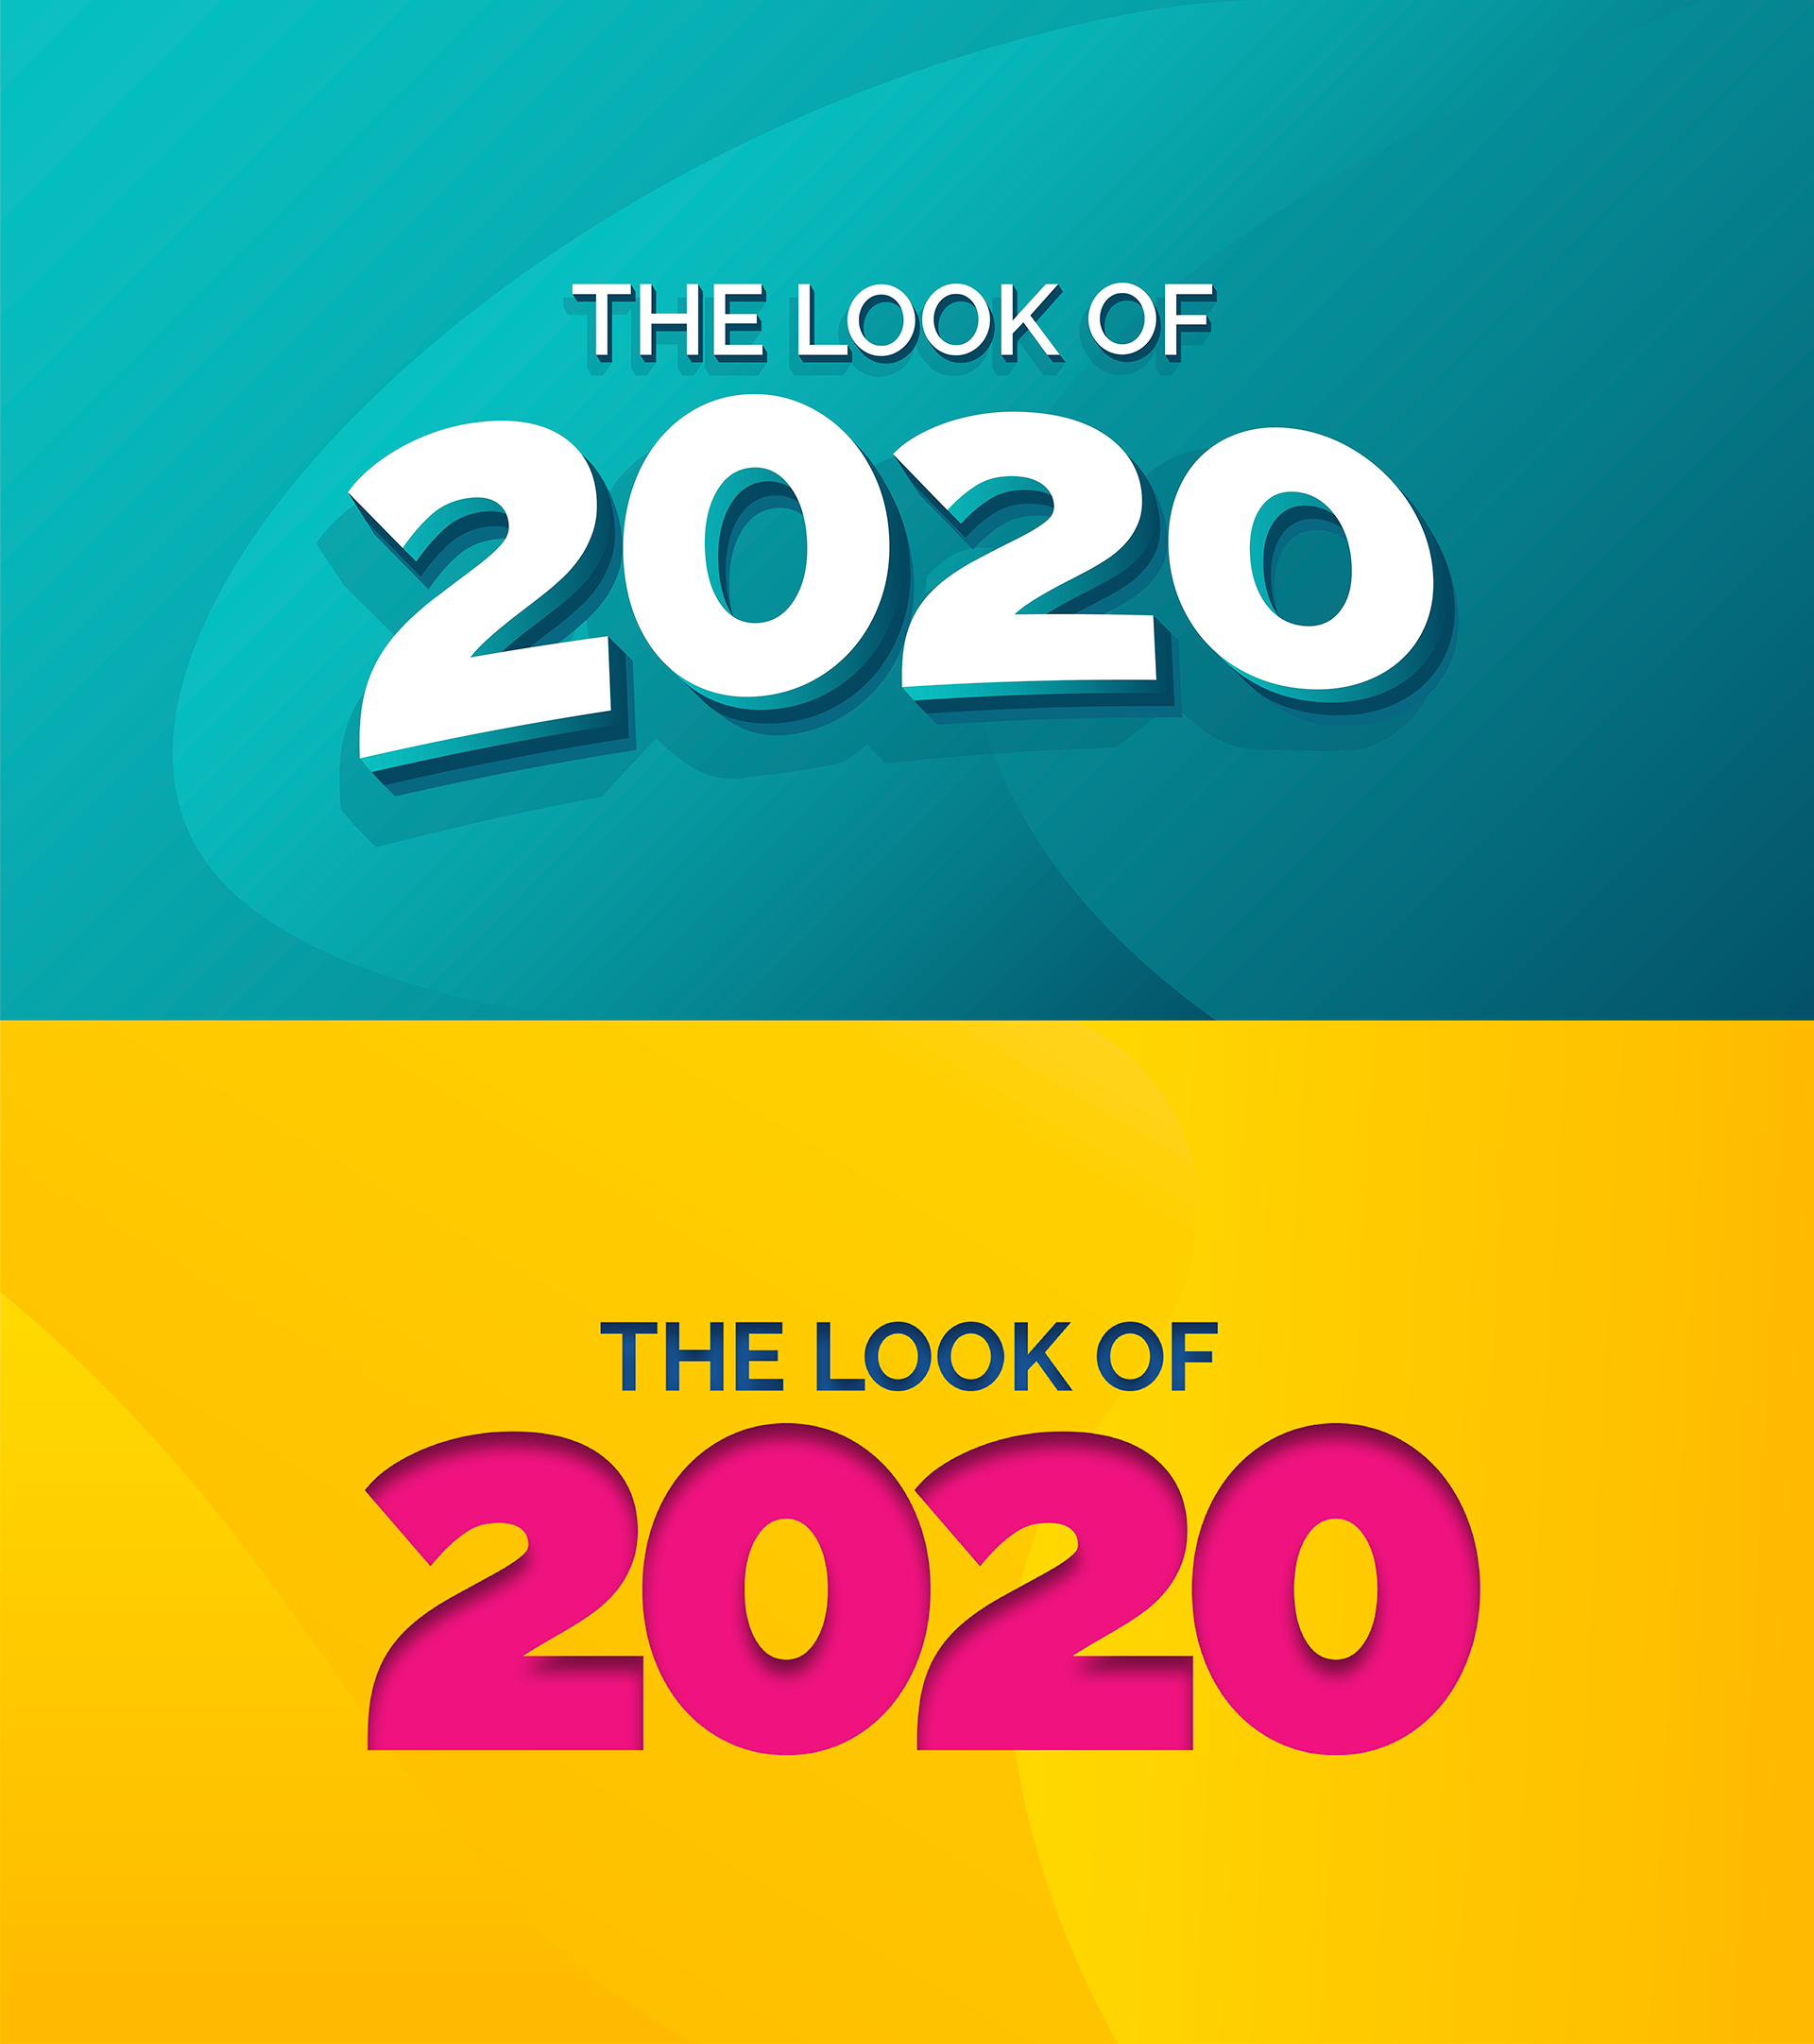 Lookof2020_MariaThulin